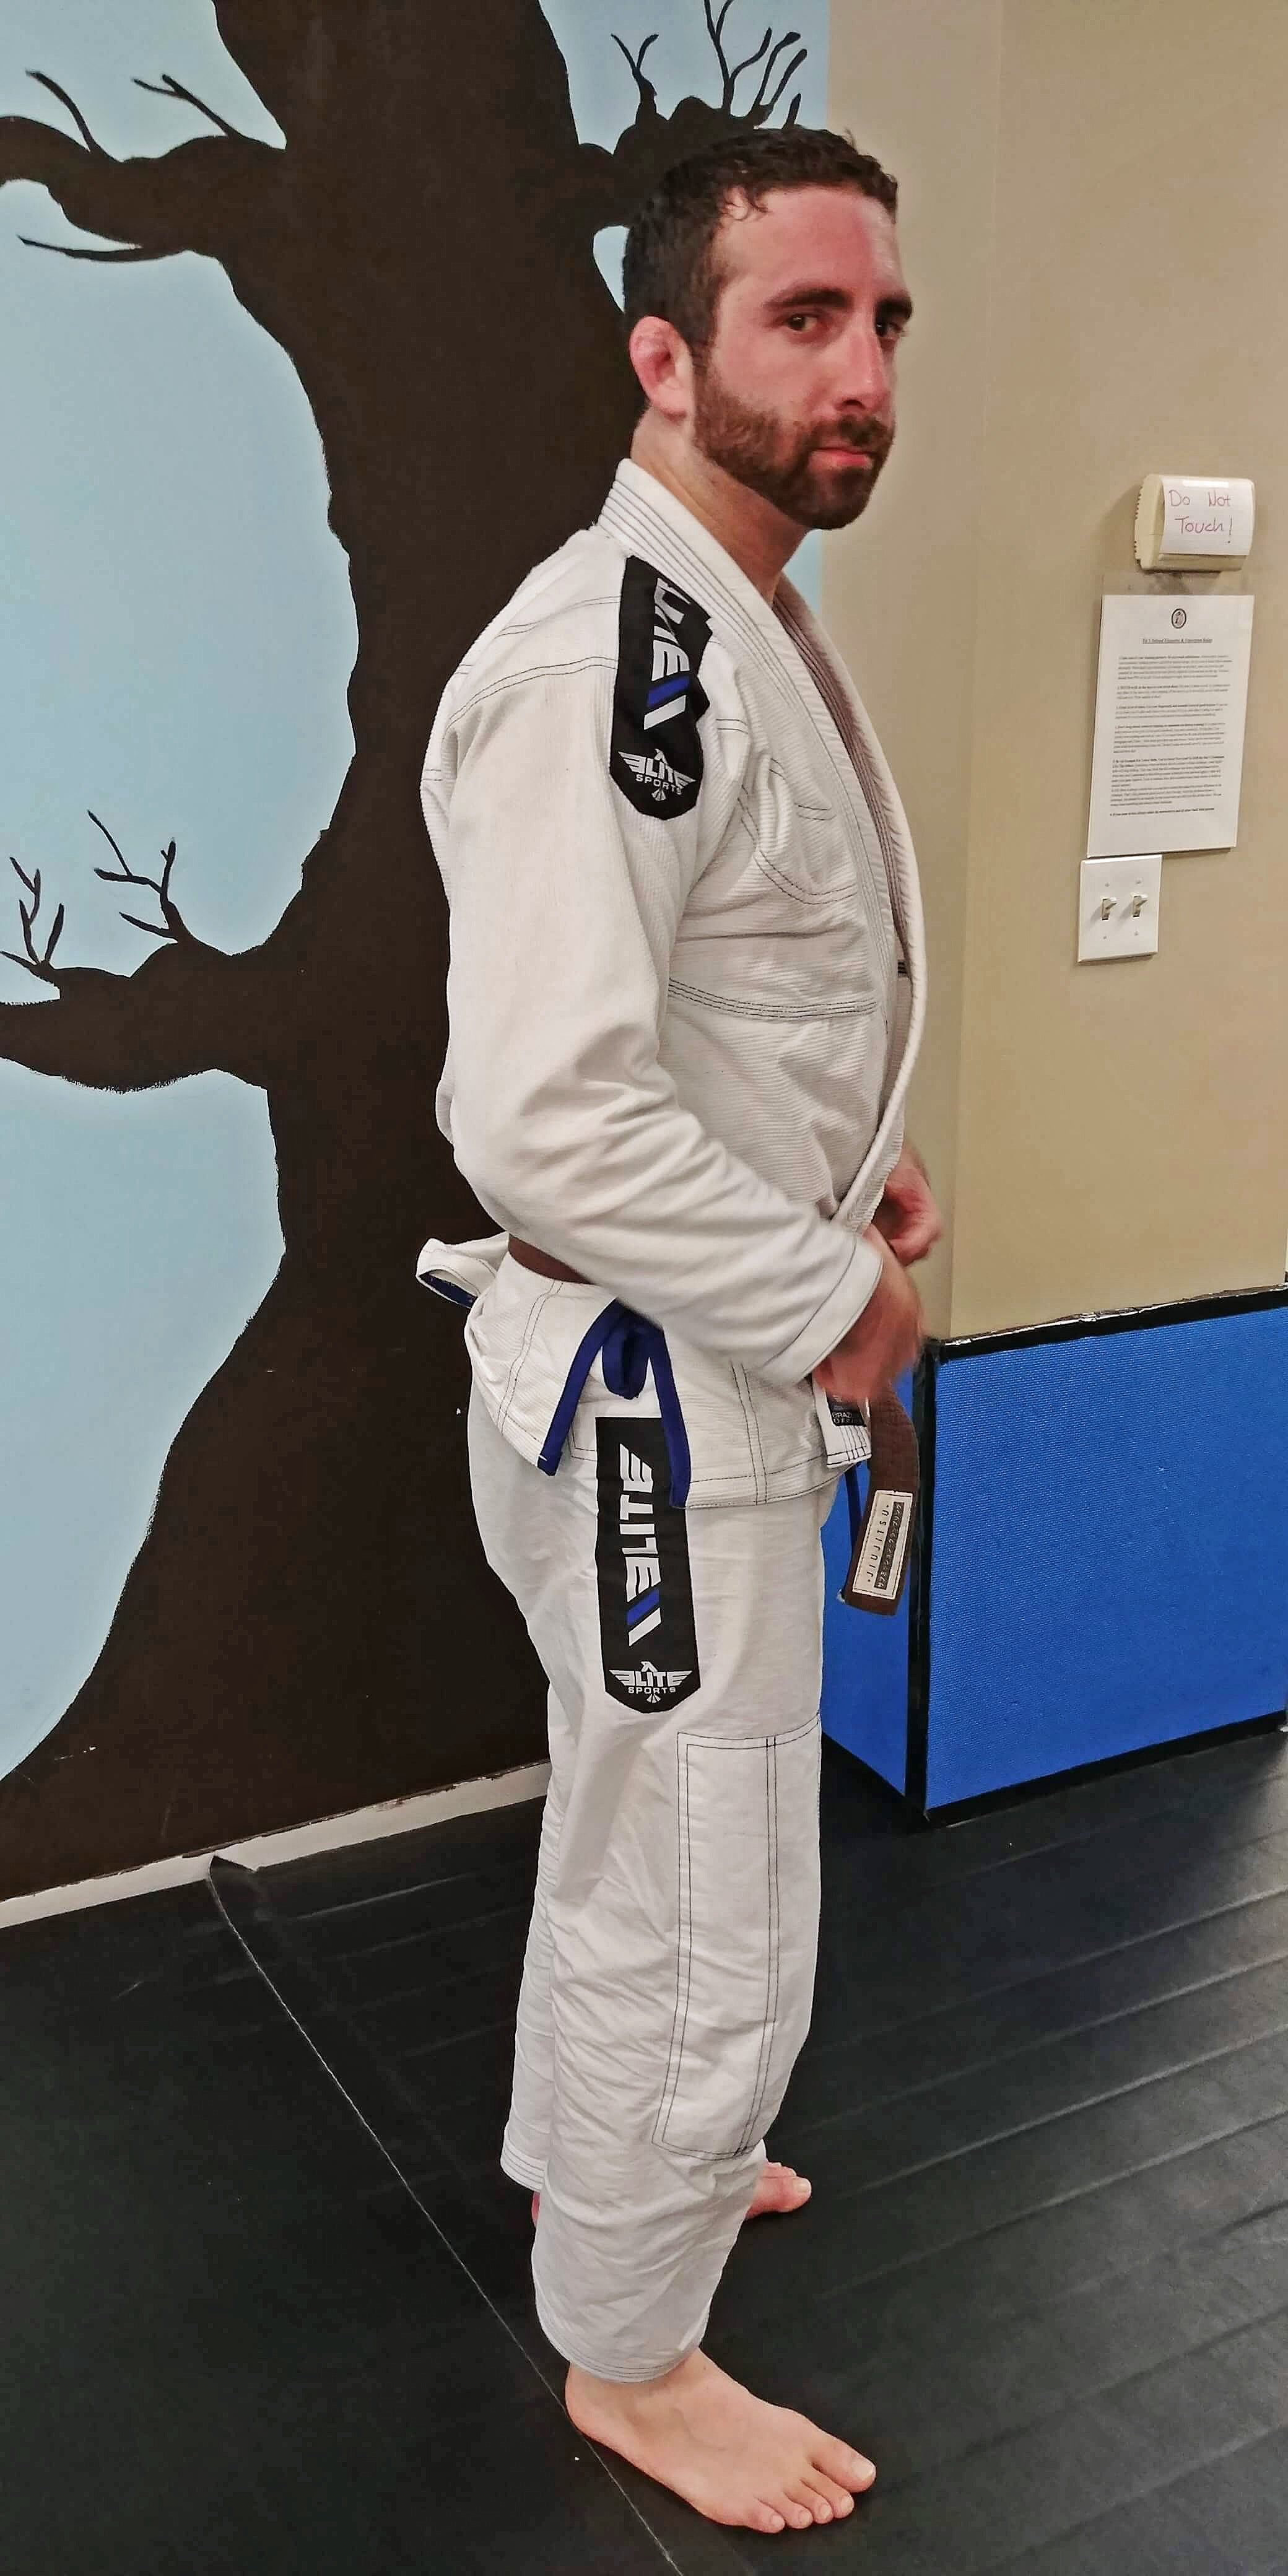 Elite sports Team Elite Bjj Blake Klassman image7